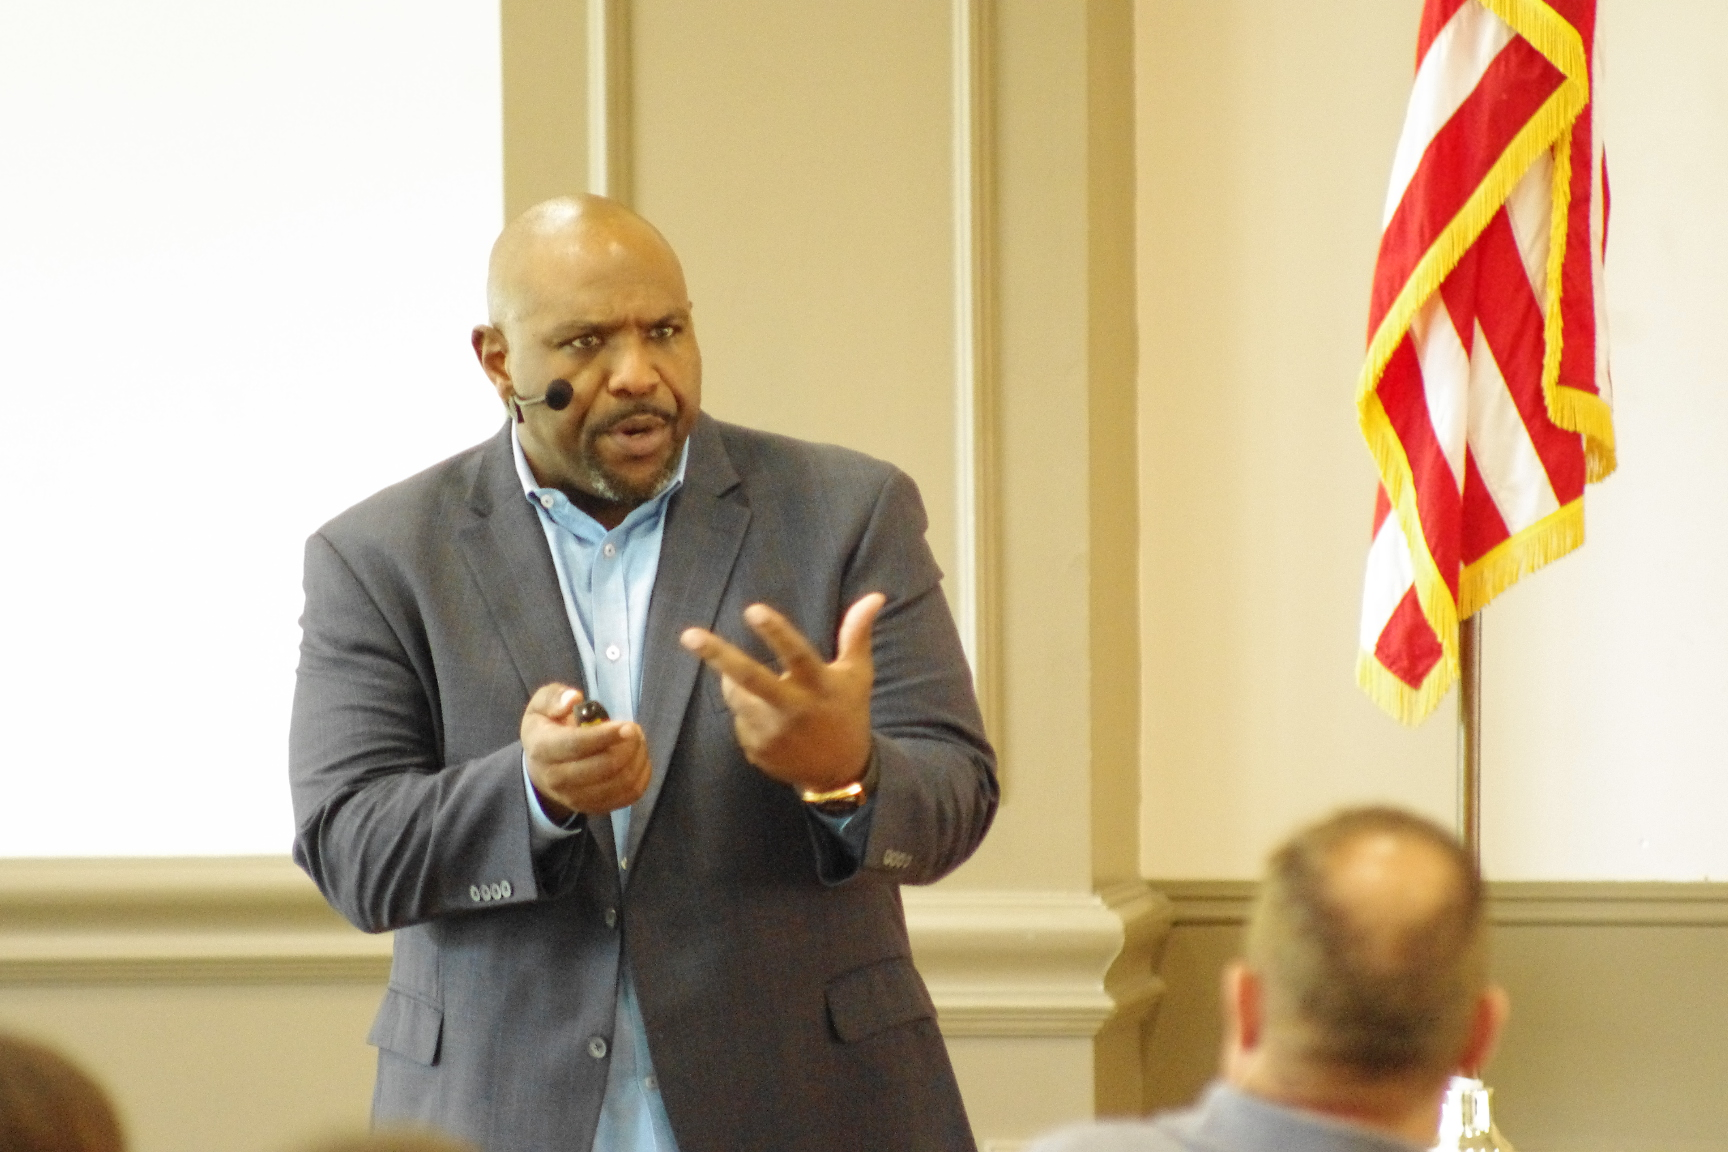 Chris Hogan of Dave Ramsey fame speaks on leadership in Spring Hill